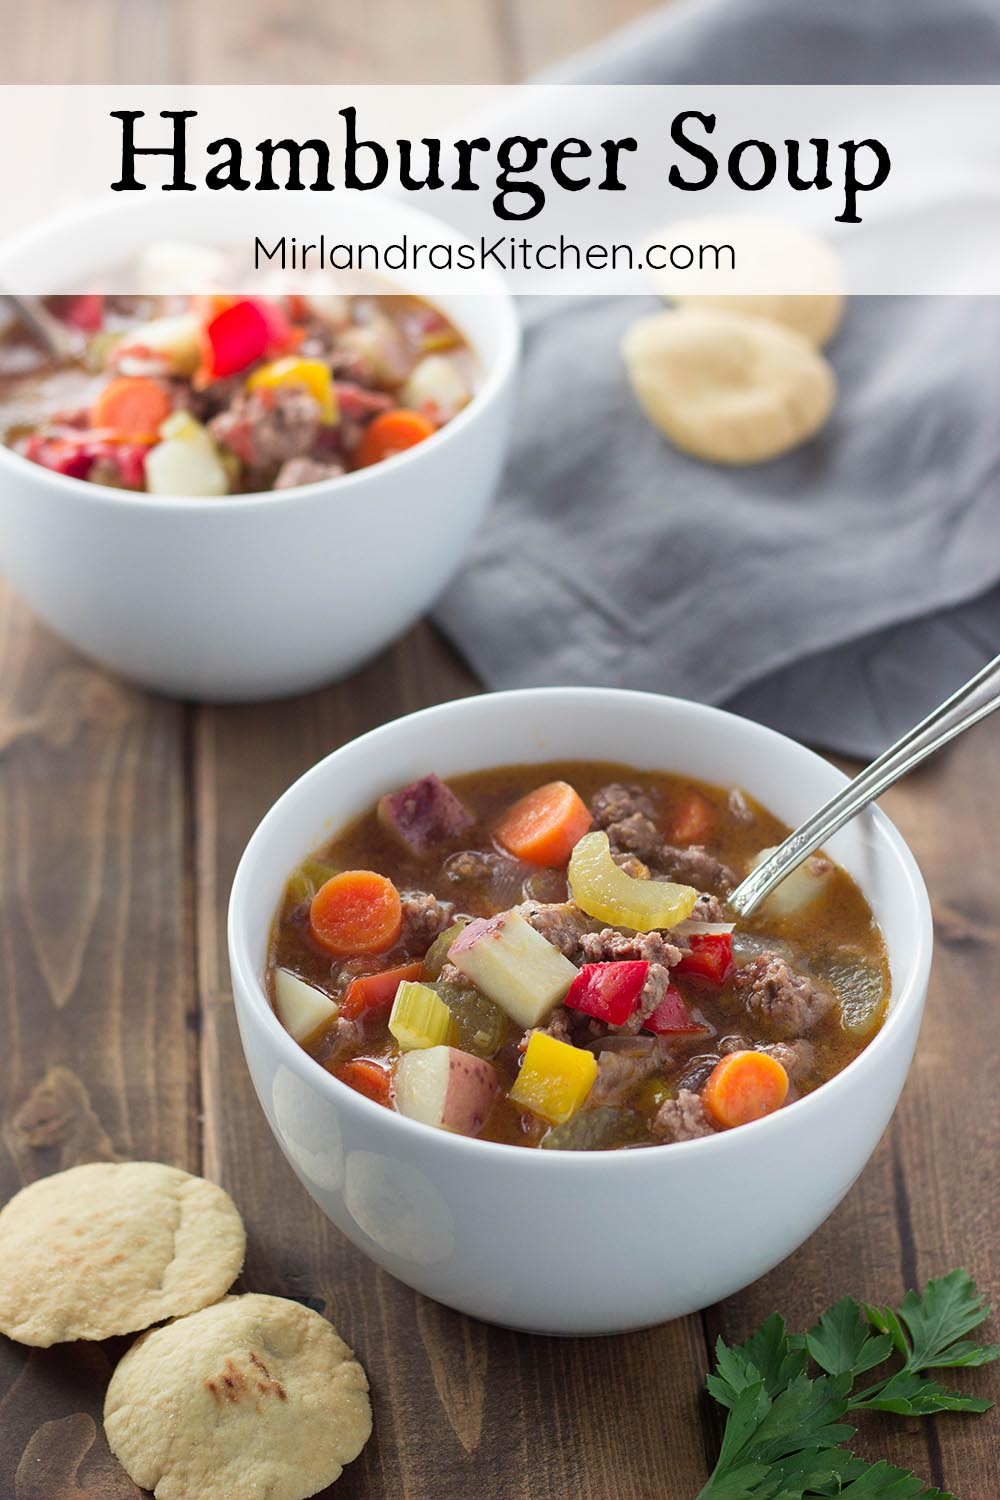 This hamburger soup is an easy and delicious meal full of veggies. I love that it fills bellies and gives us the nutrition we need to stay healthy during the cold season.